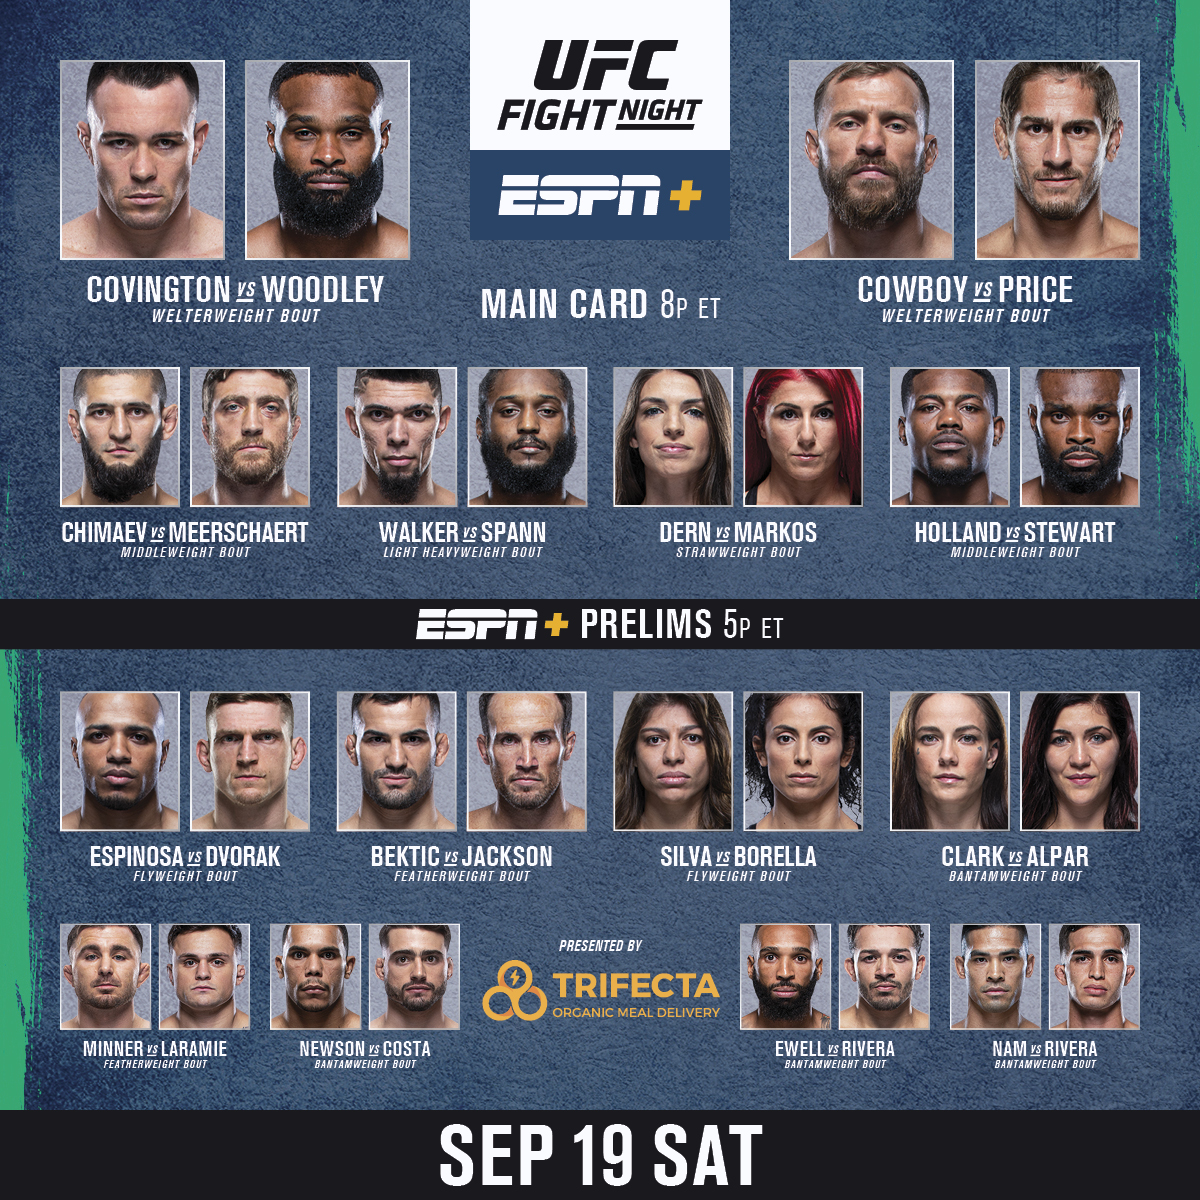 This is one you don't want to miss! 🍿  It's FIGHT DAY for #UFCVegas11 - LIVE on #ESPNPlus   [ B2YB @TrifectaSystem ] https://t.co/i1YwcaXMeh